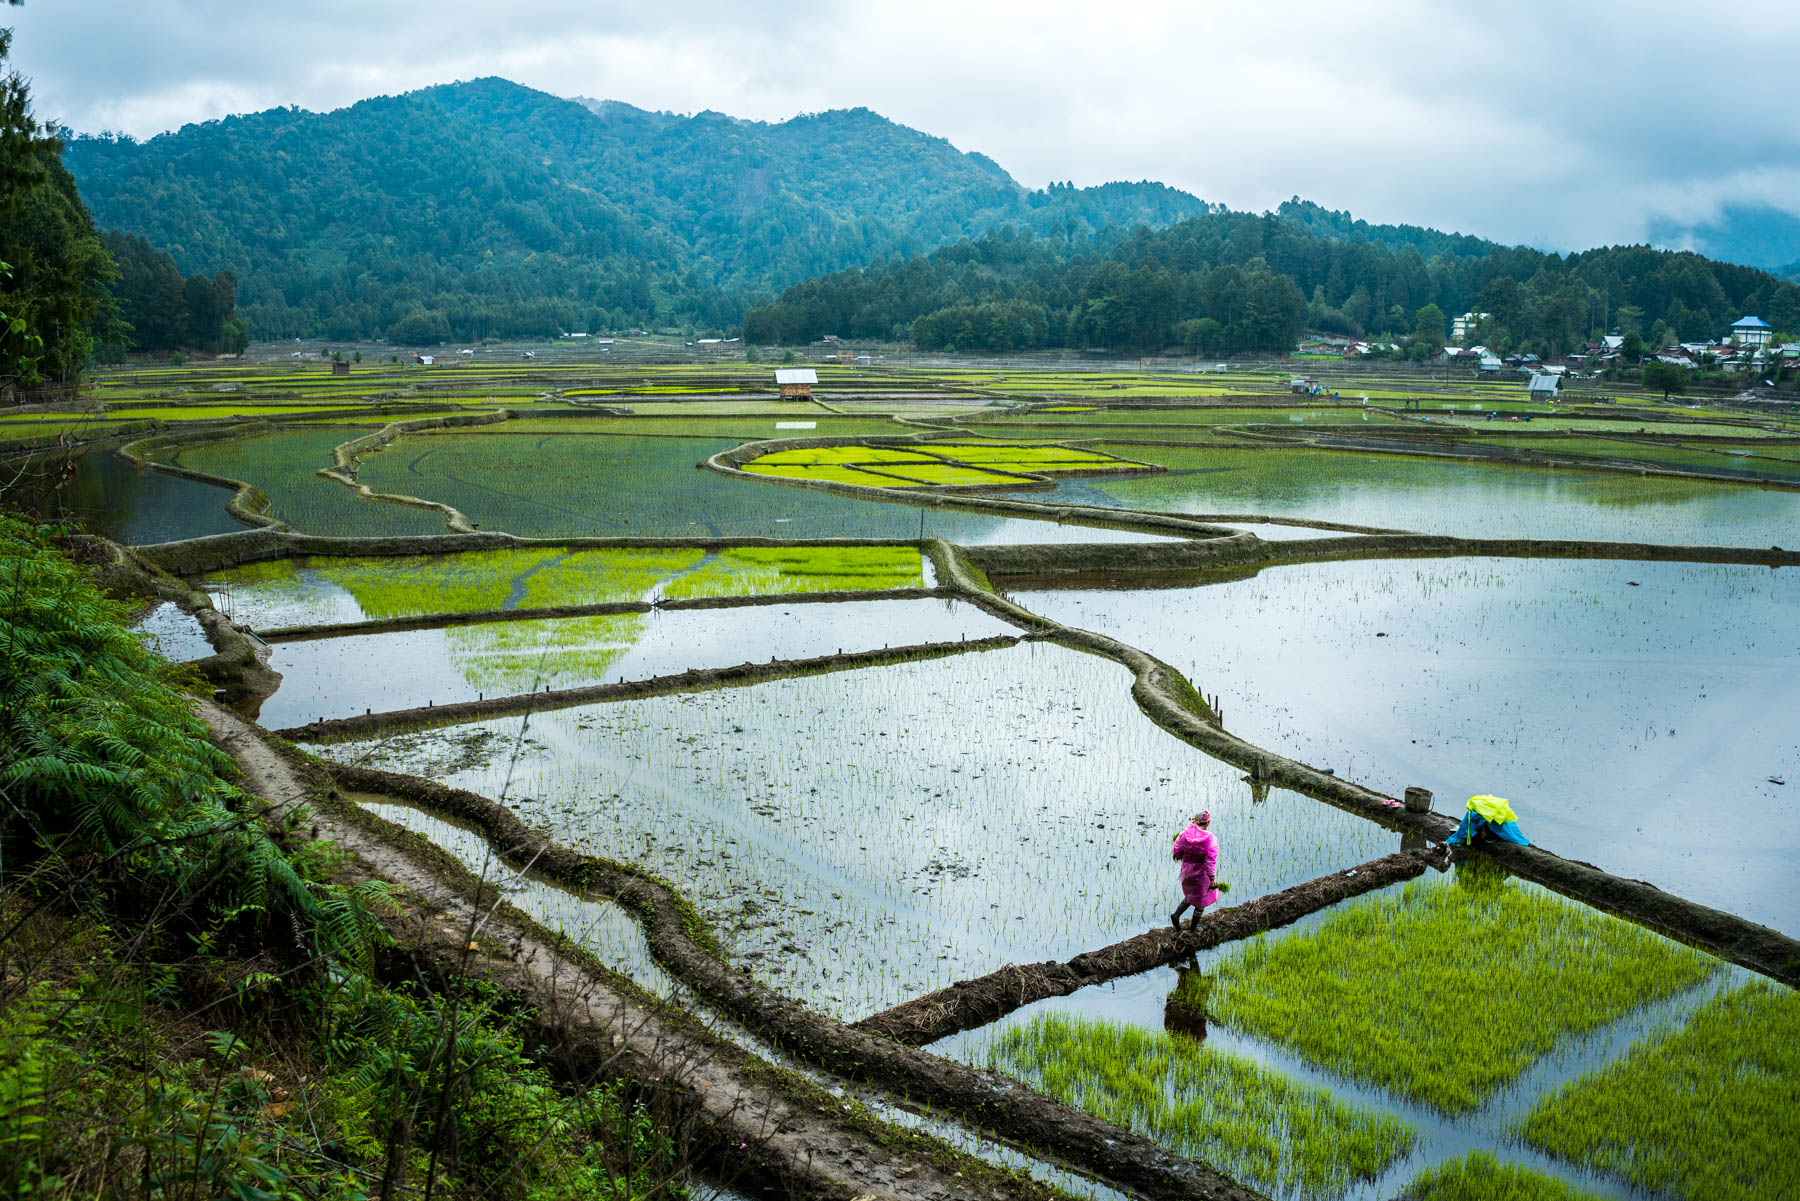 Travel to Arunachal Pradesh, India - A woman walking on the rice paddies in Ziro Valley - Lost With Purpose